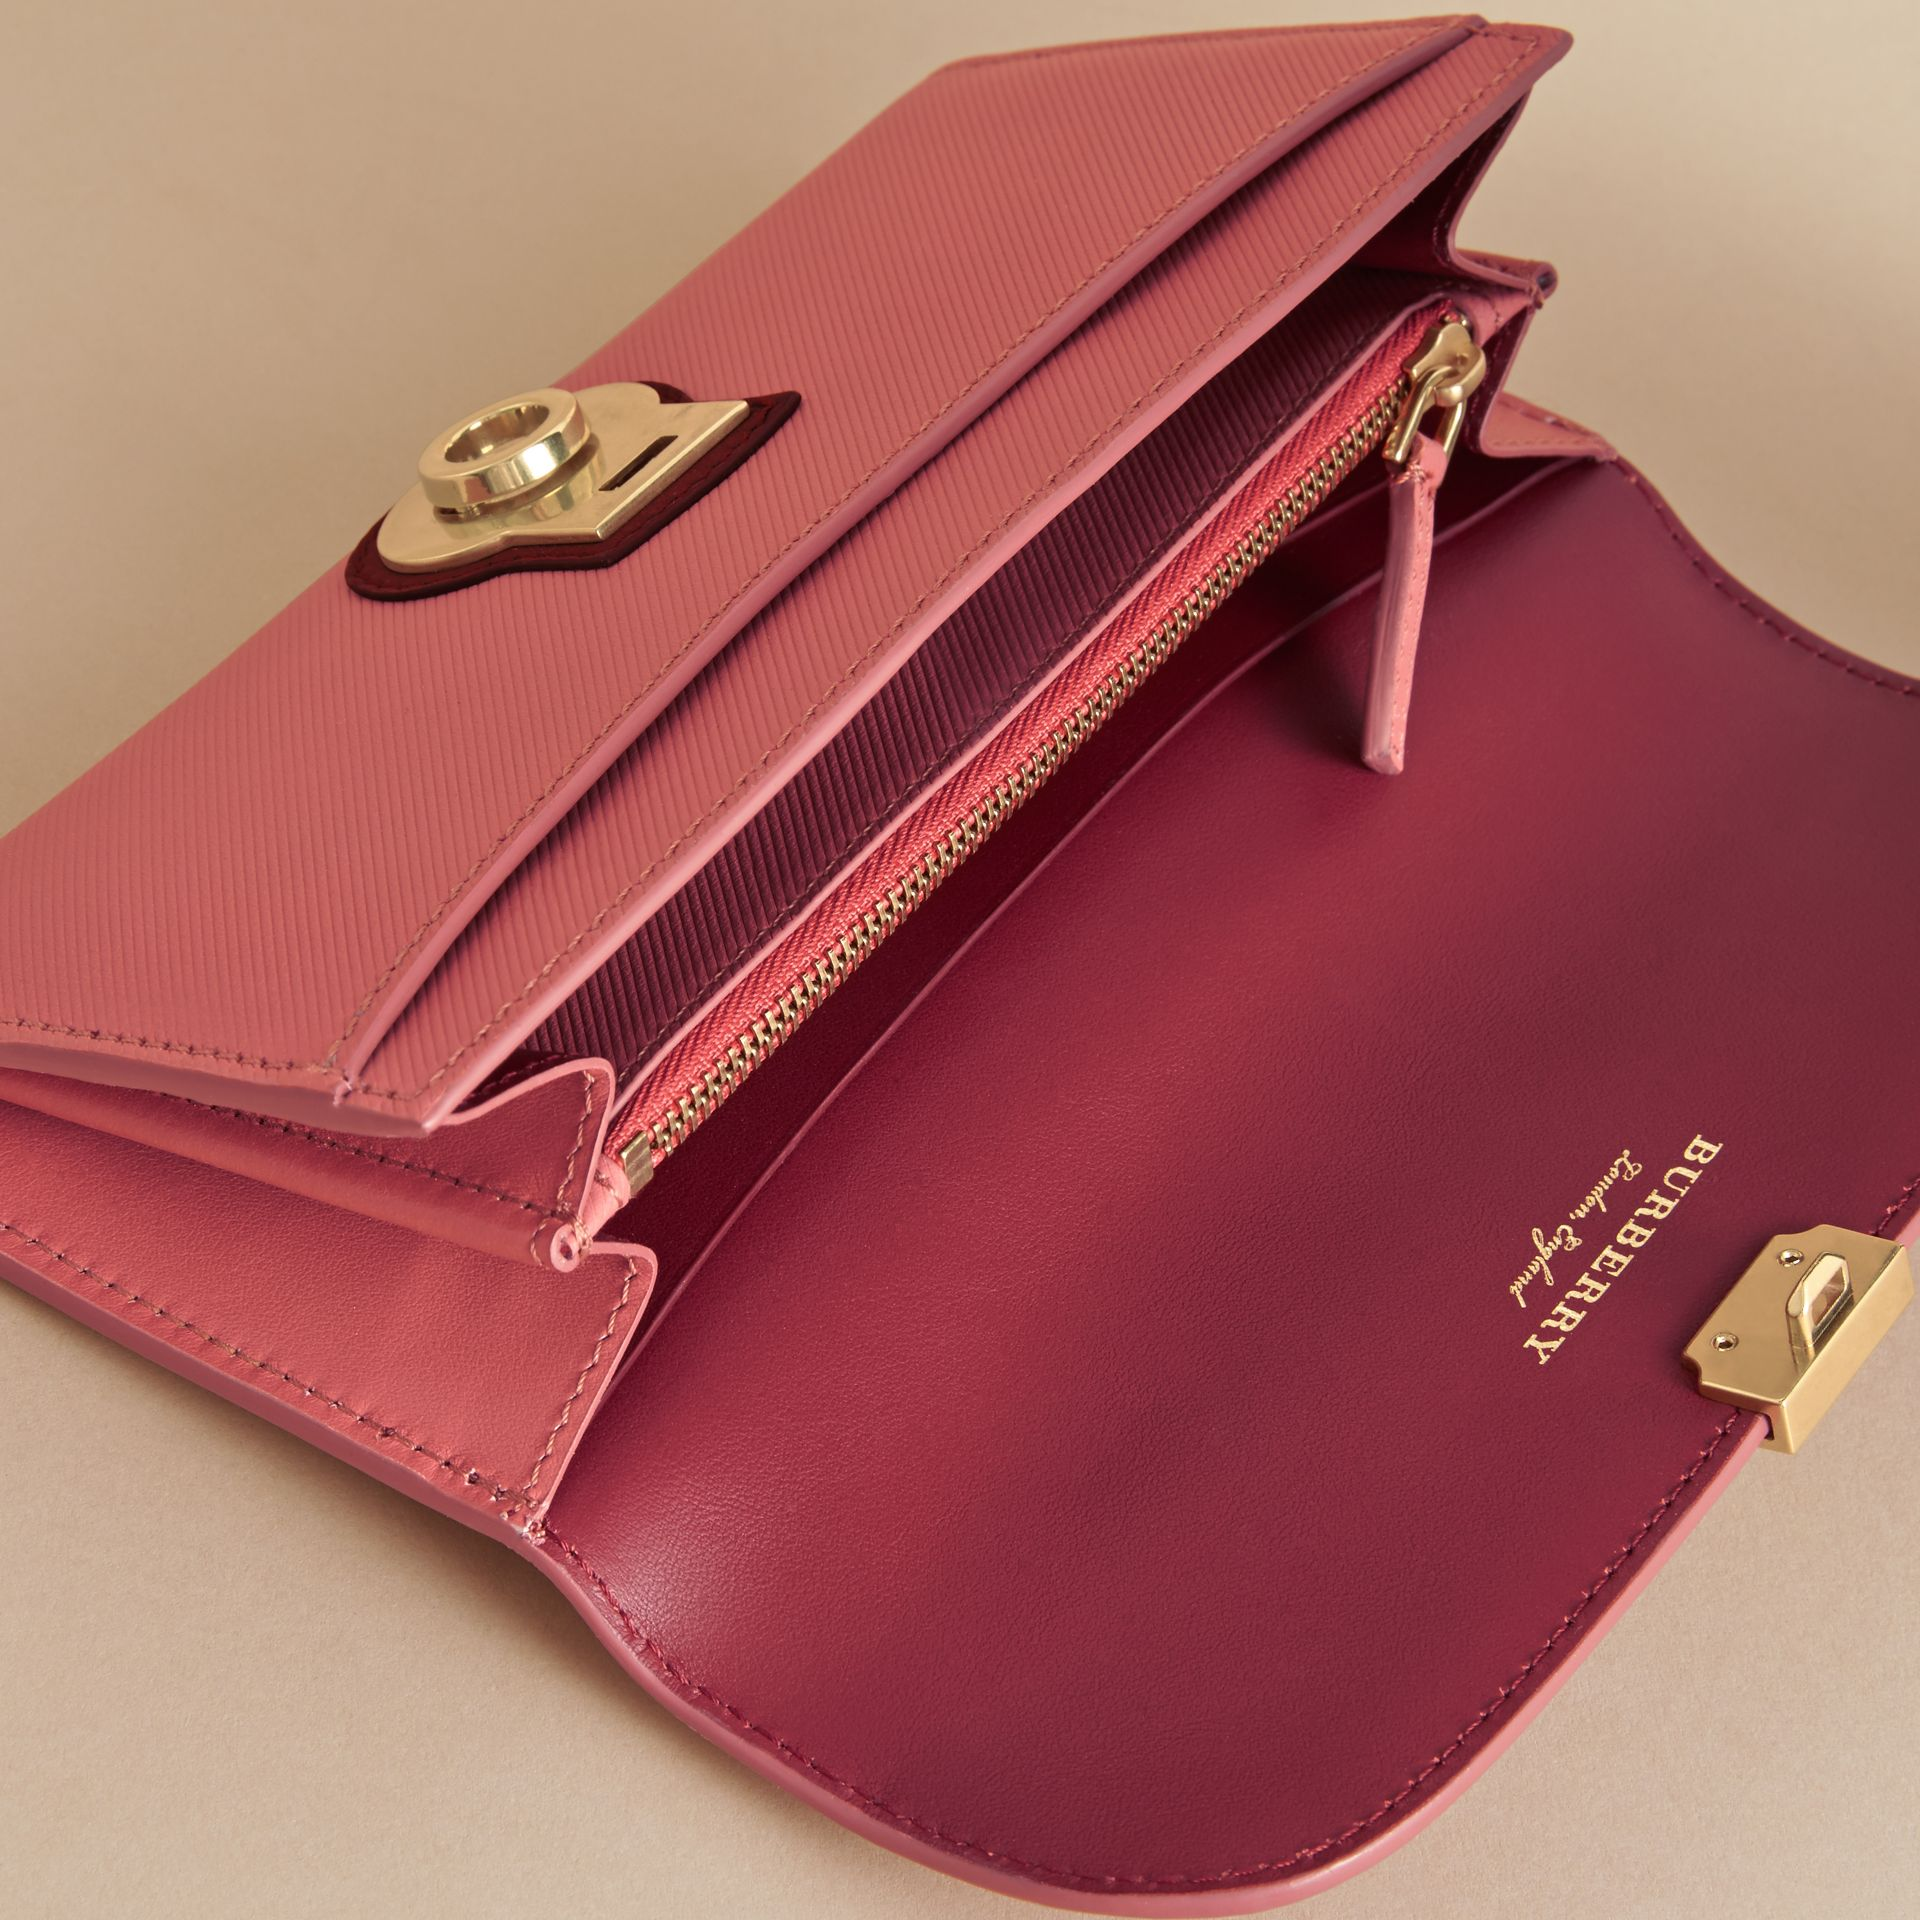 Two-tone Trench Leather Continental Wallet in Blossom Pink/antique Red - Women | Burberry - gallery image 5